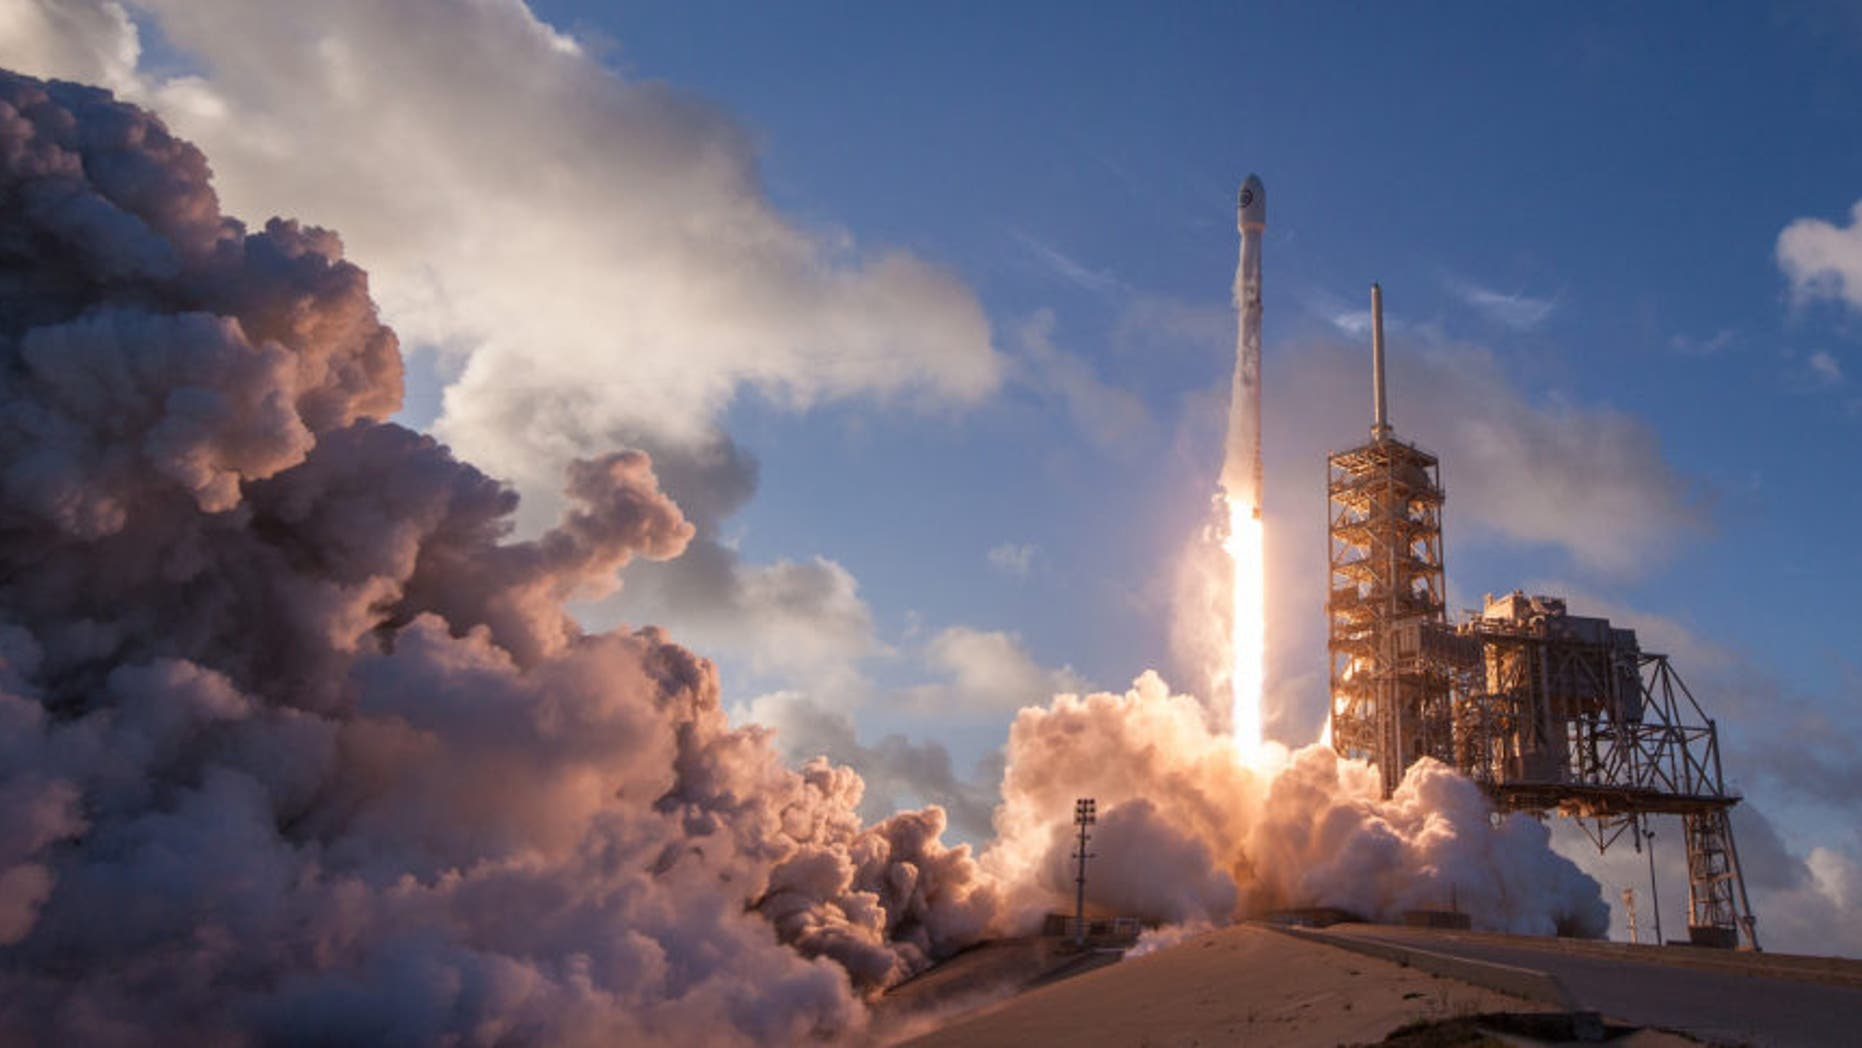 A SpaceX Falcon 9 rocket launches the NROL-76 satellite for the U.S. National Reconnaissance Office on May 1, 2017. A Falcon 9 is scheduled to loft a mysterious payload called Zuma for the U.S. government on Nov. 16.